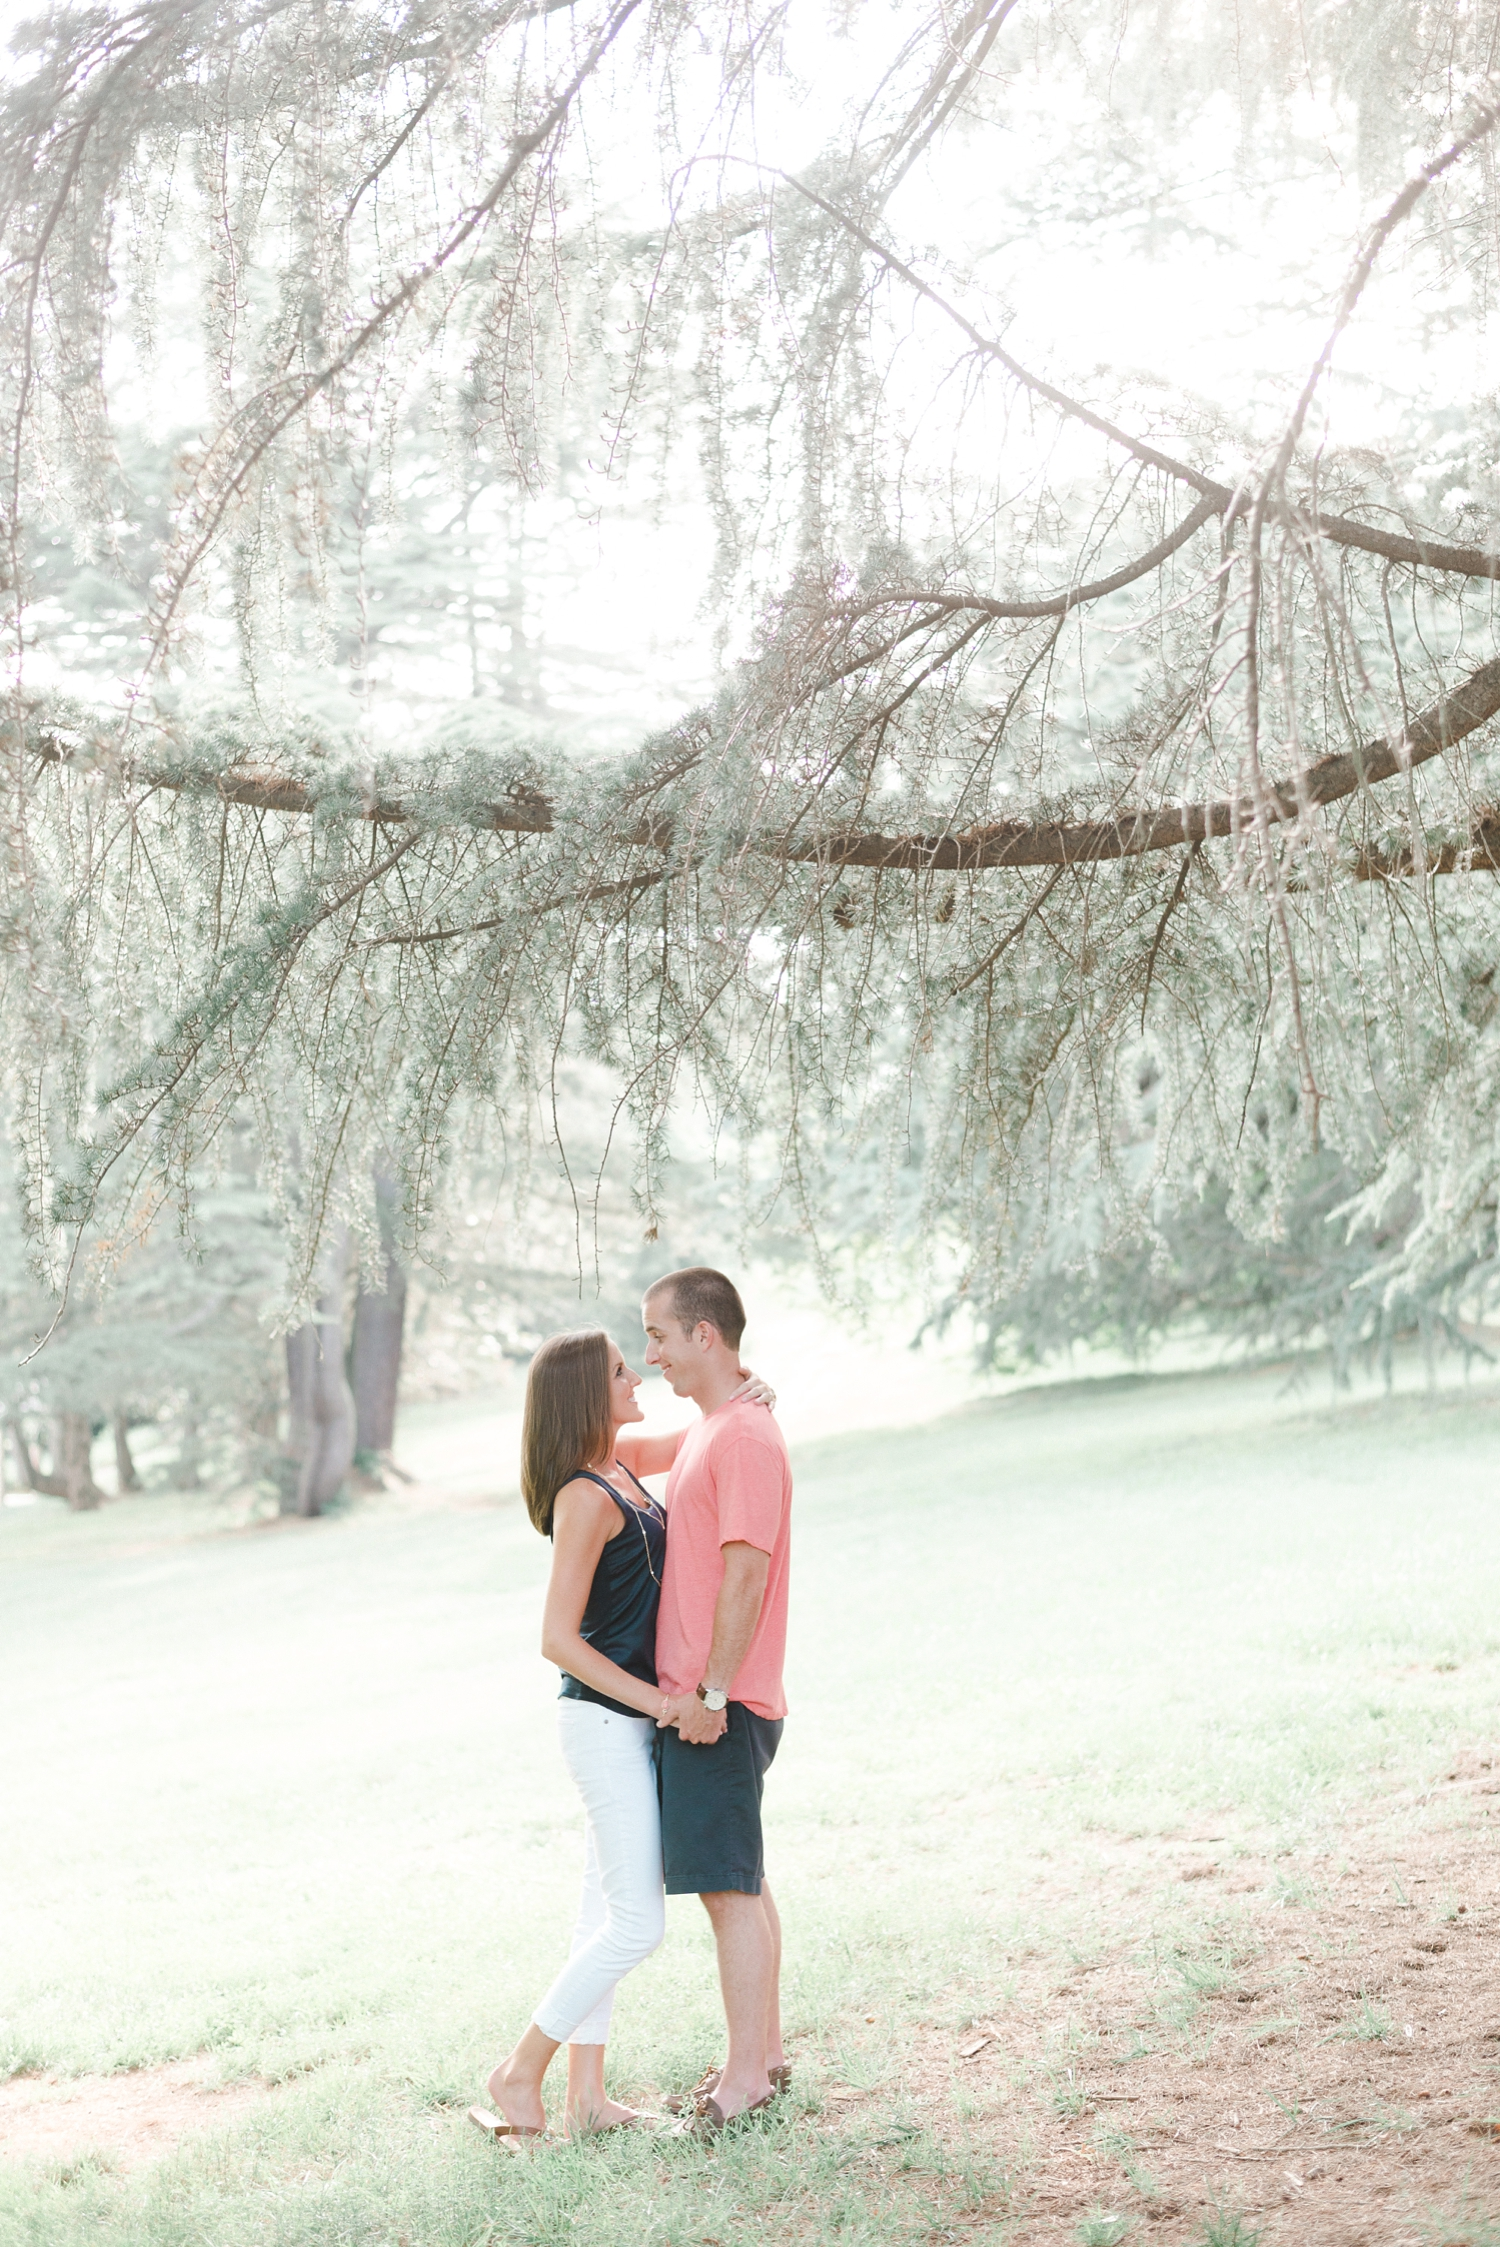 Maymon_Park_richmond_engagement_photography_0005.jpg